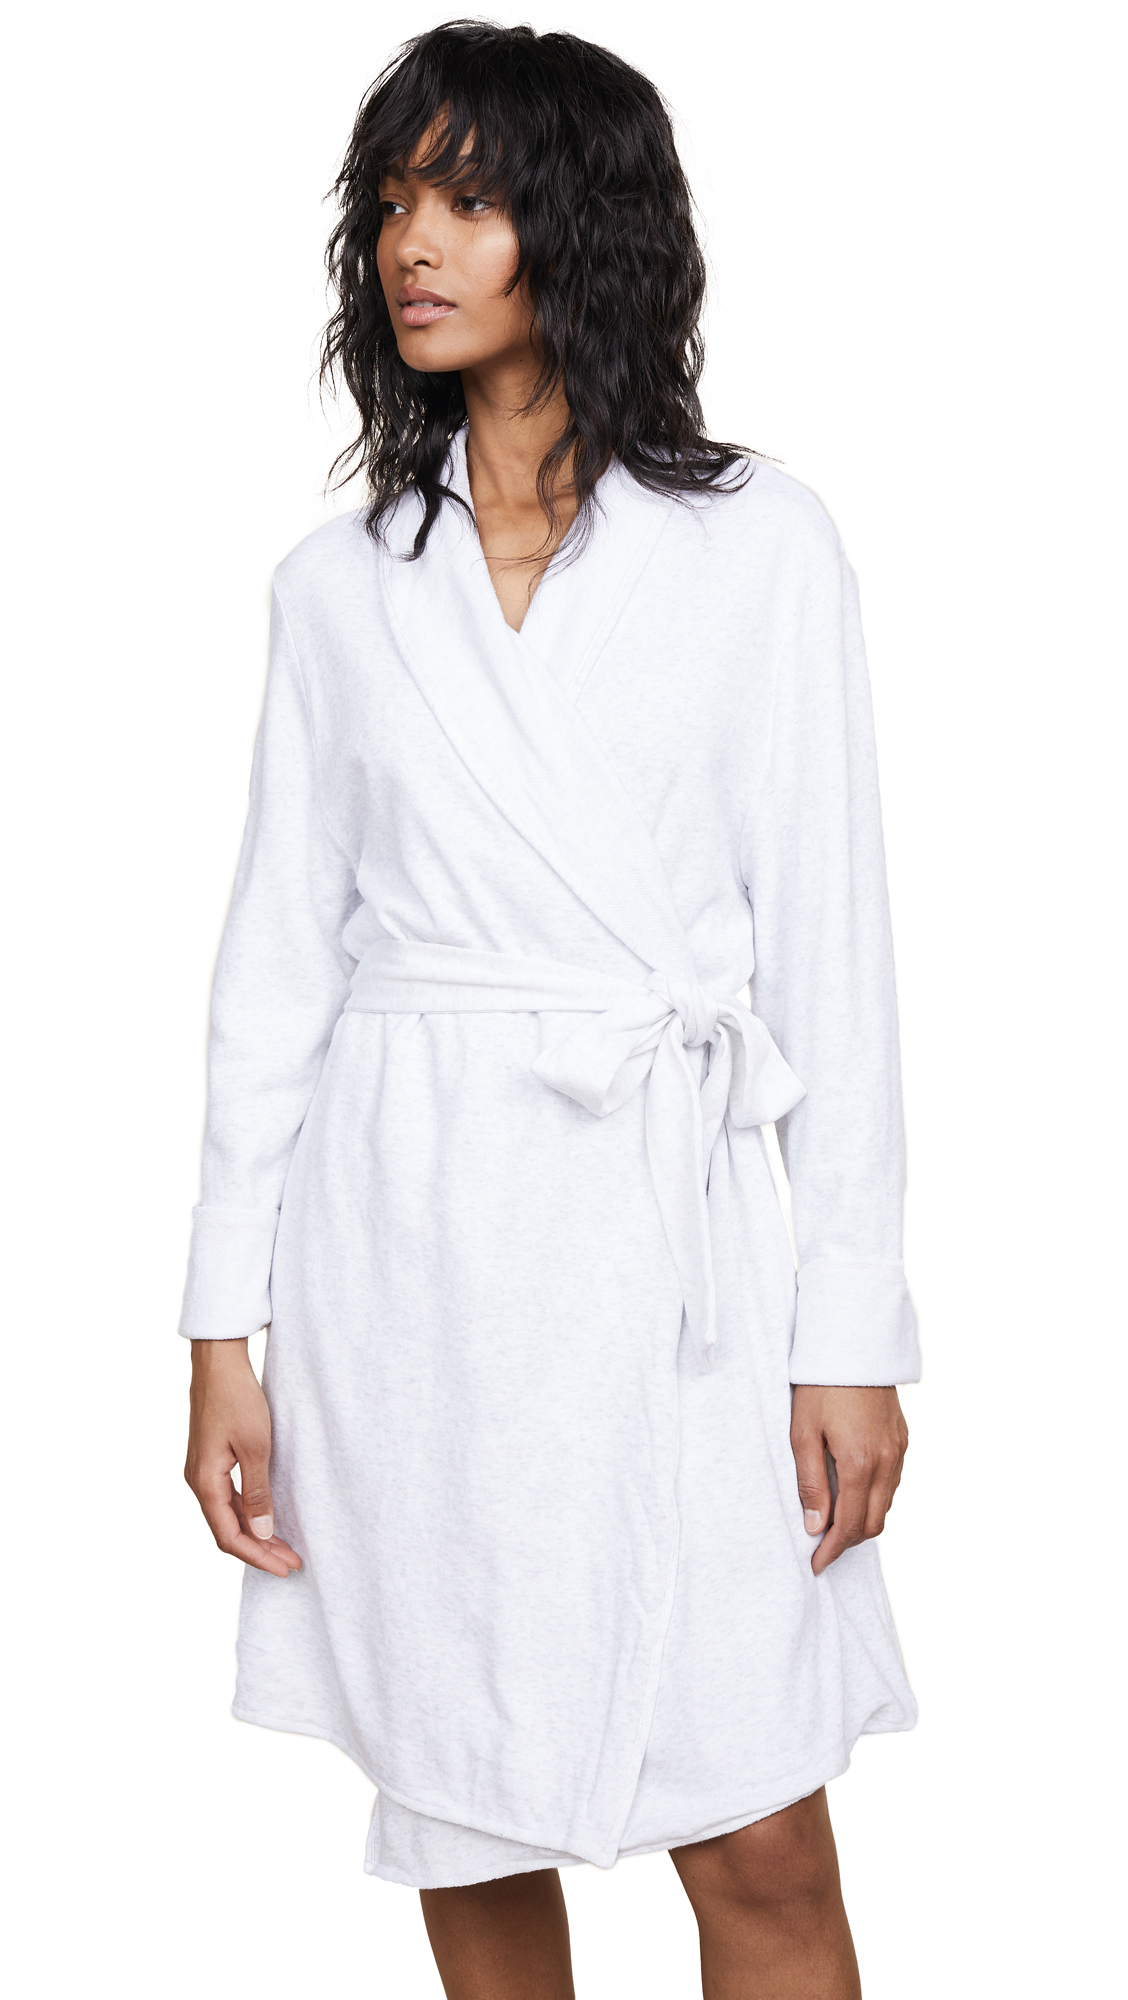 LEONOR COLLAR ROBE